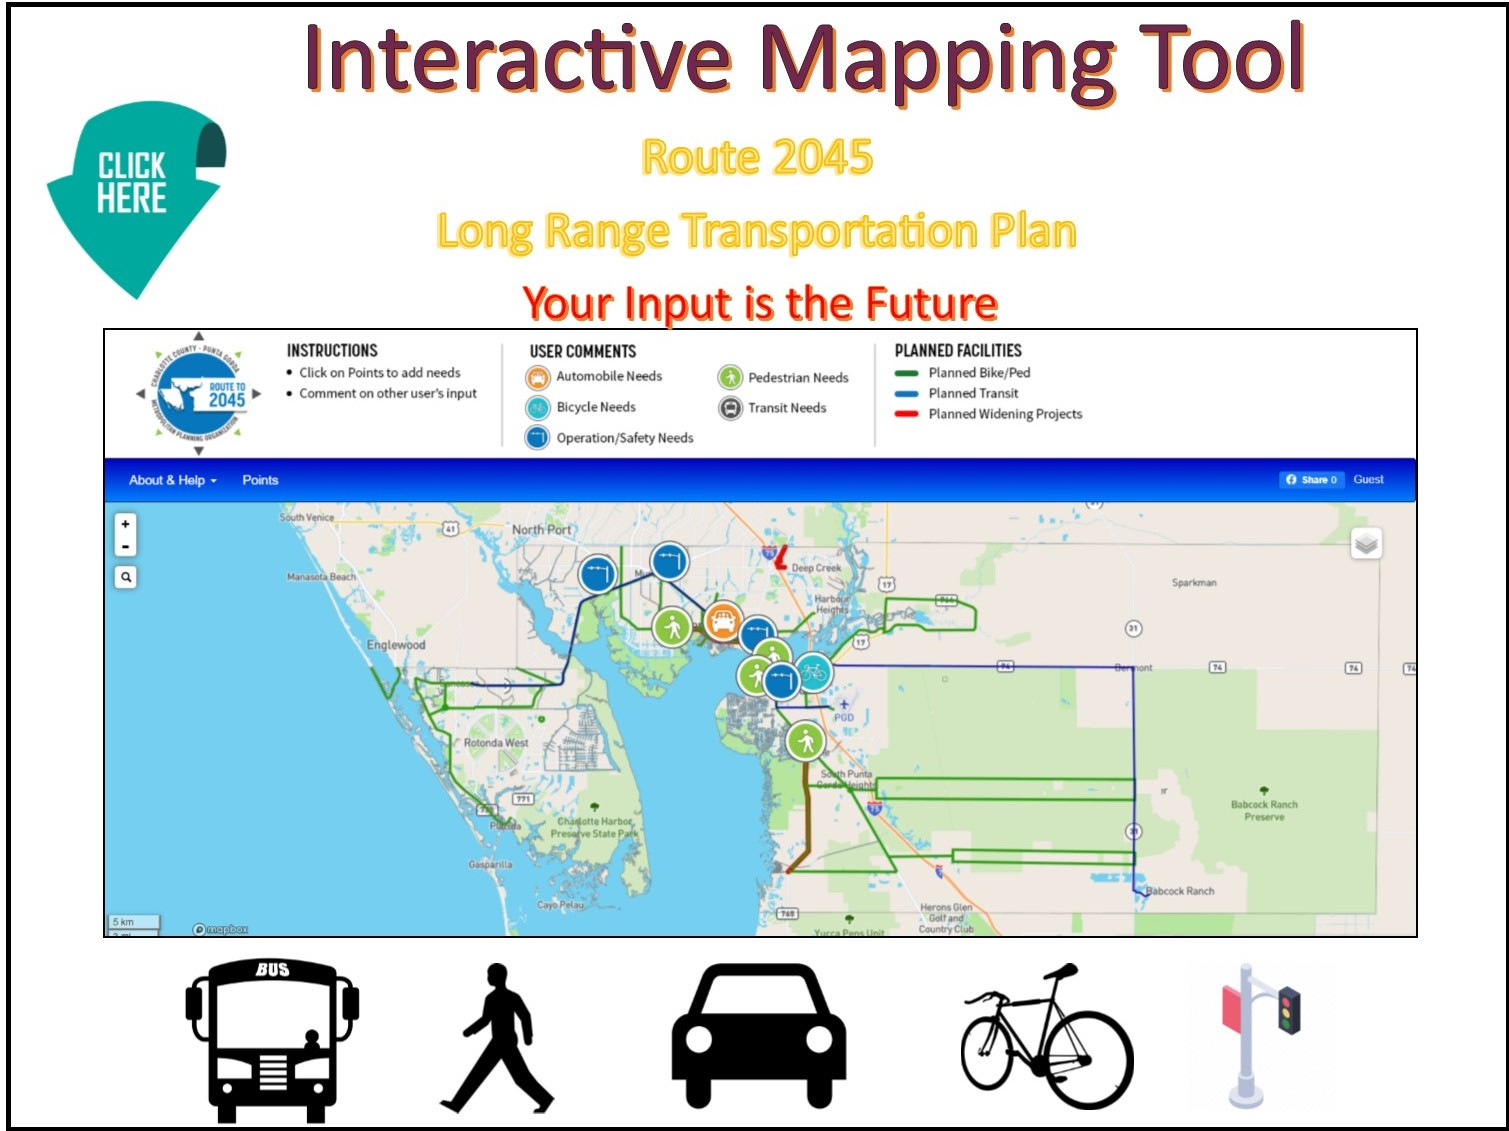 Interactive Mapping tool Link